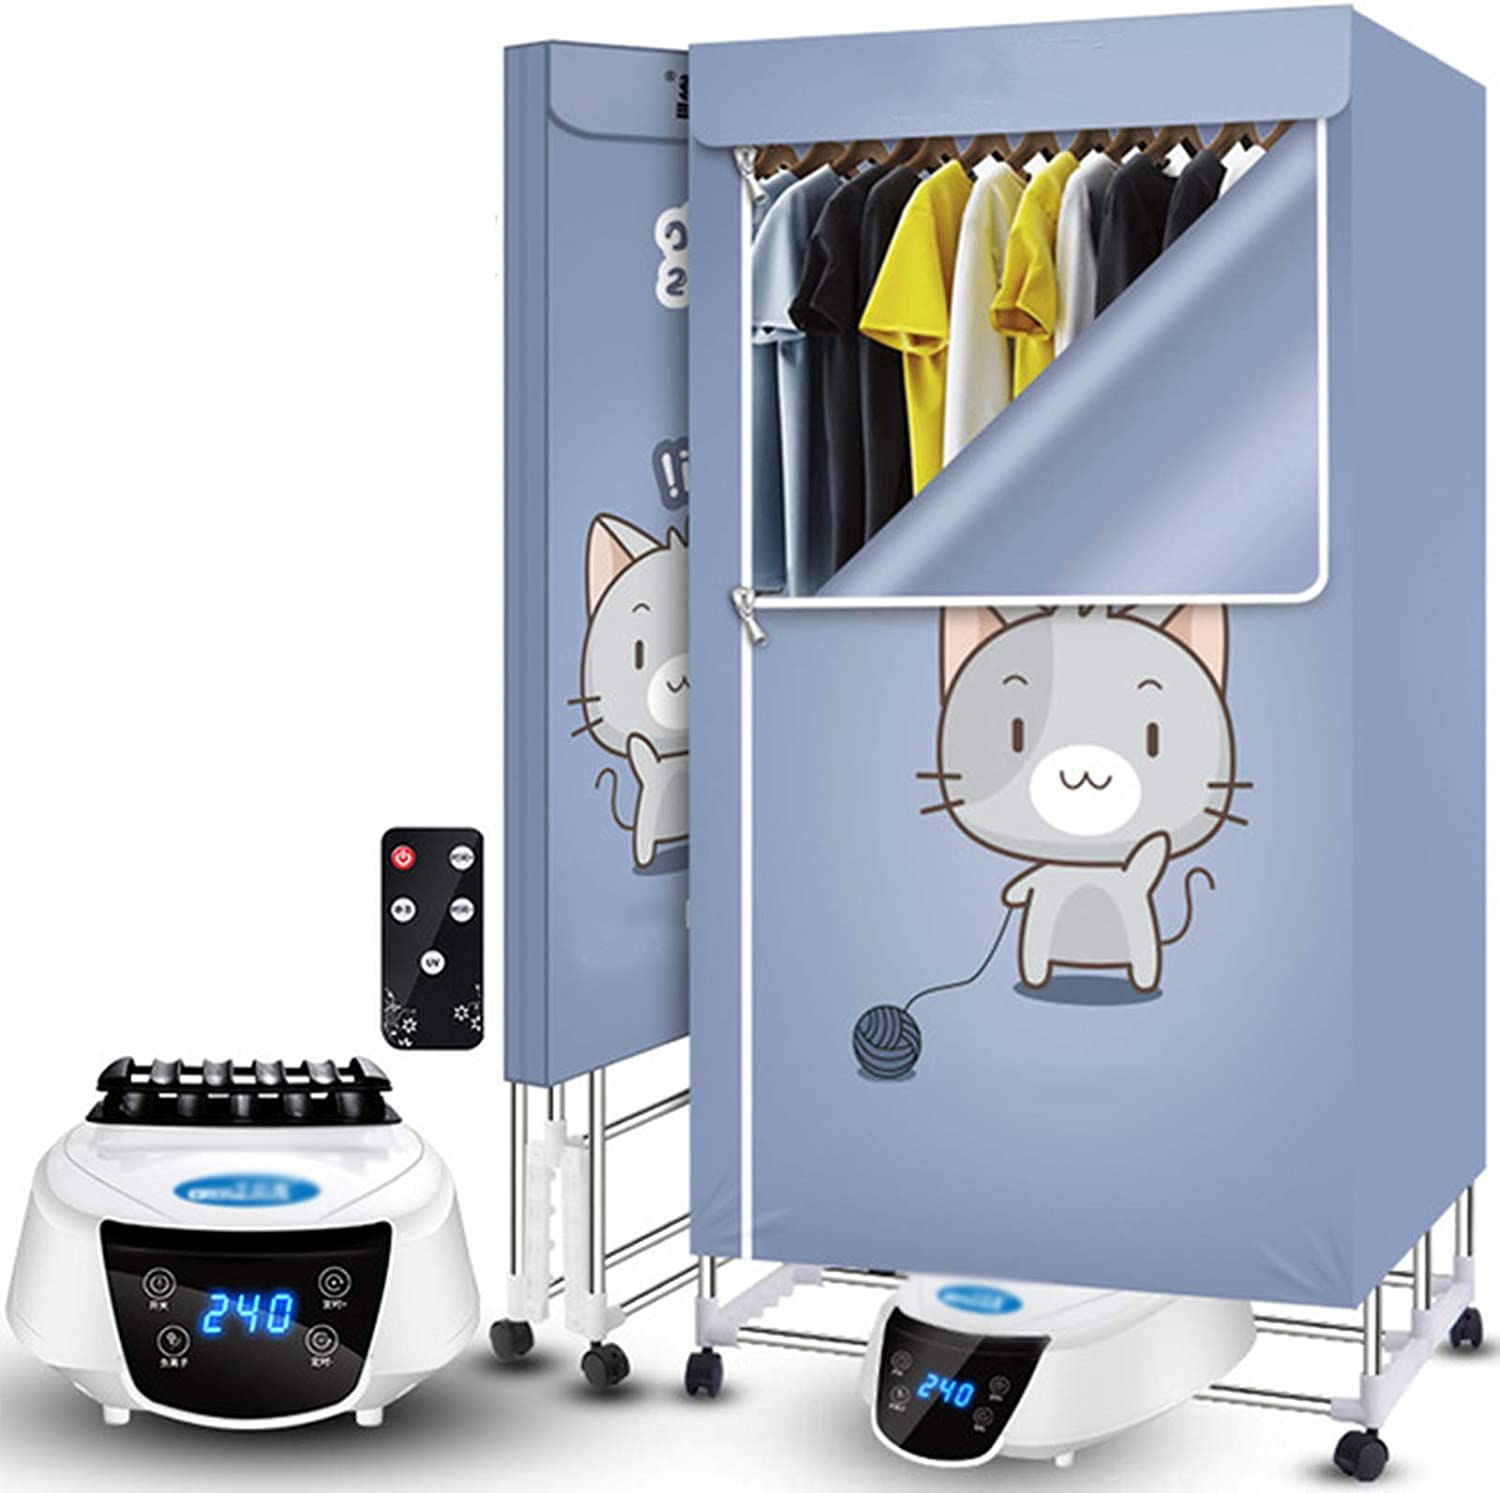 N Chicago Mall \ A Drying Wardrobe Double Capacity 1300w 15kg w Layer Large Chicago Mall